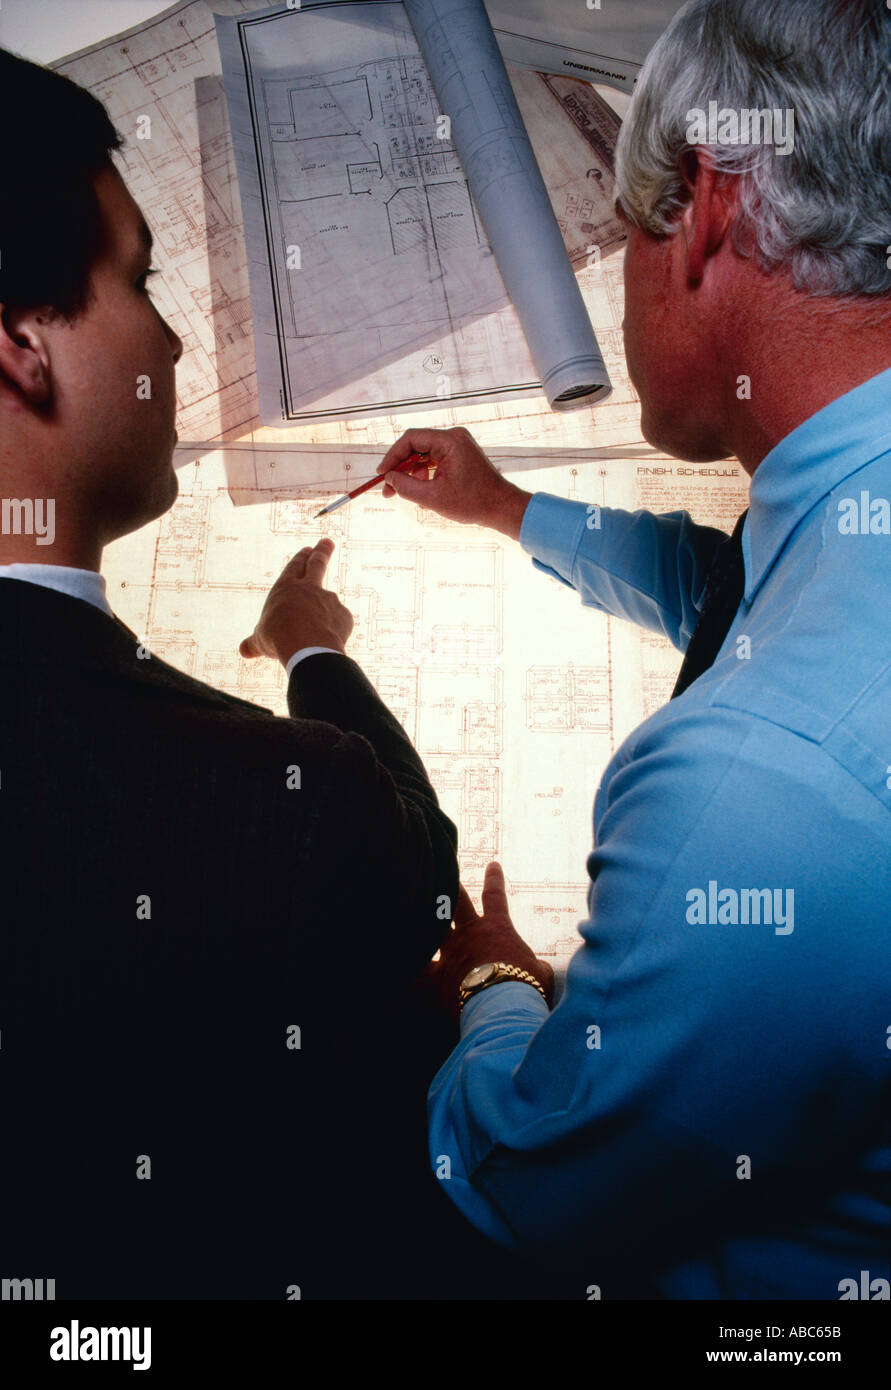 Architecture / Business - Architects, businessmen, executives inspecting, reviewing, examining blueprints on a light table. - Stock Image